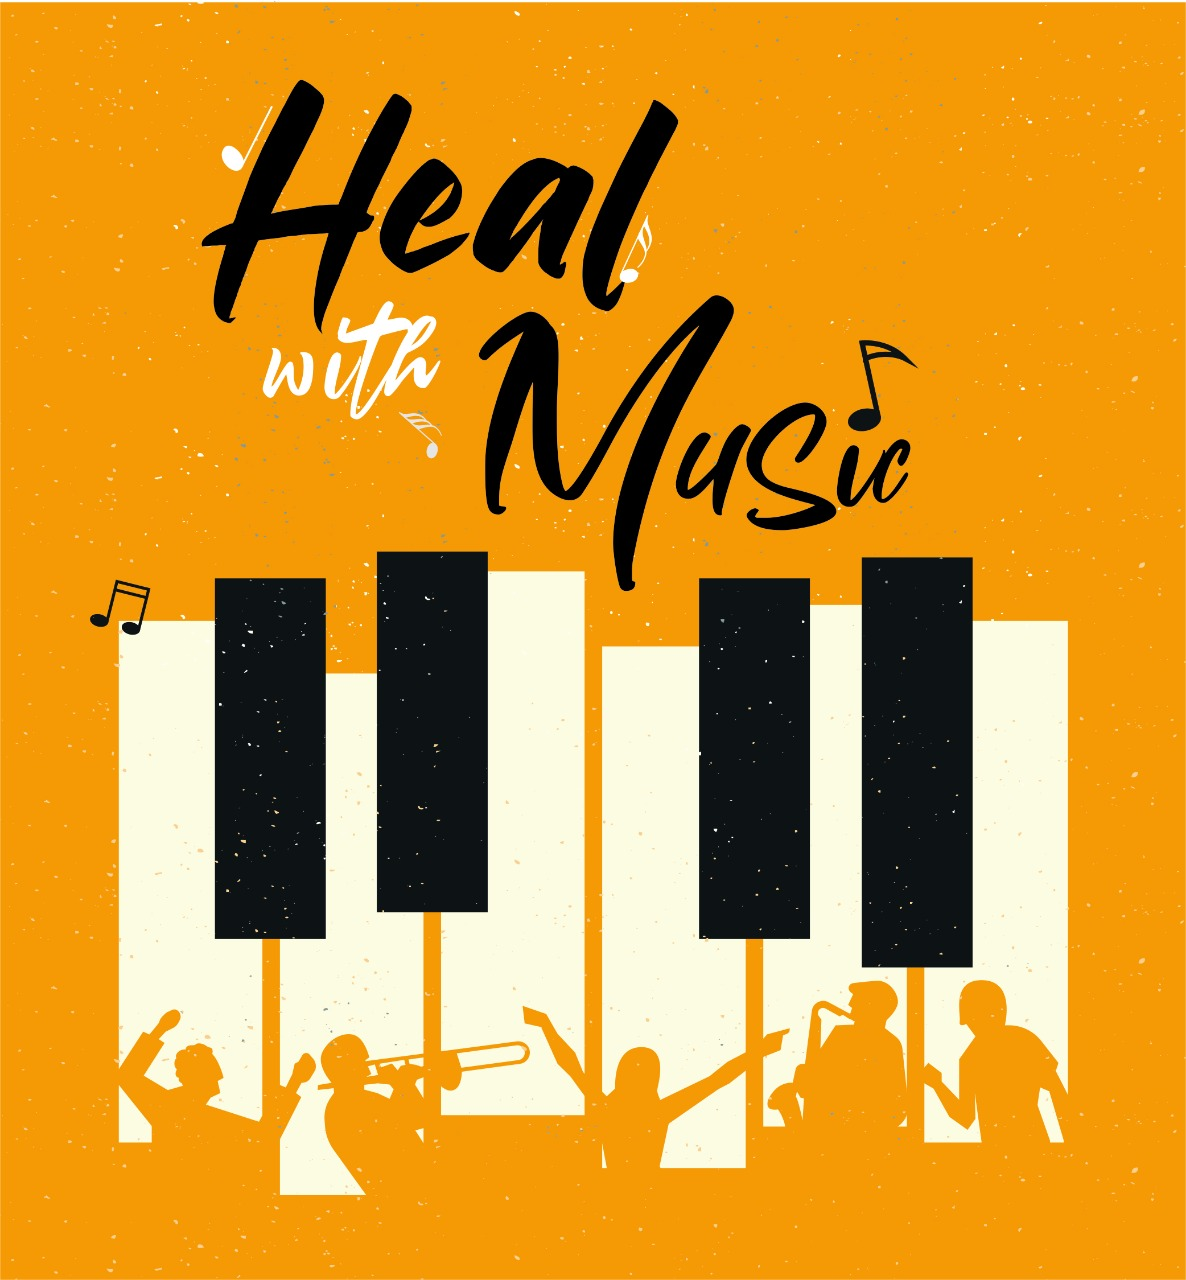 Heal with Music